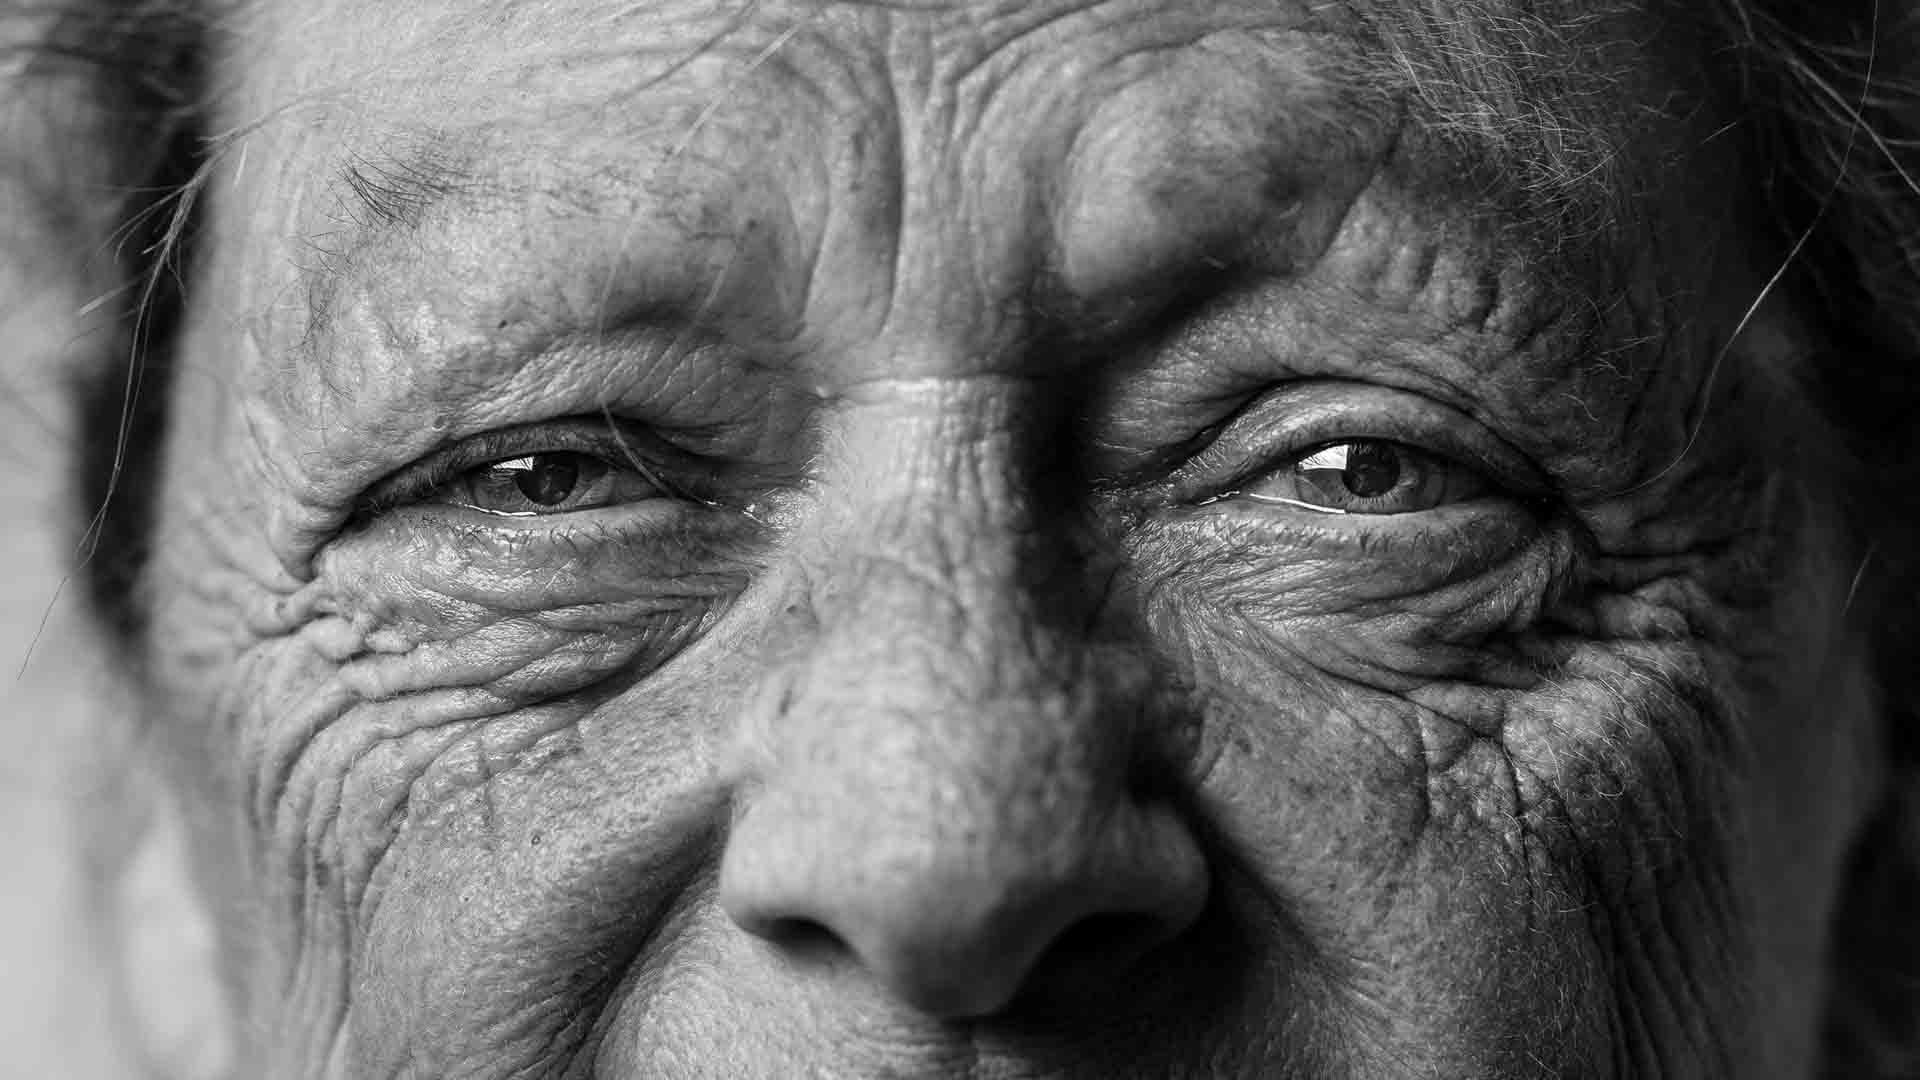 How to use depth of field to draw attention to a subject - old man close up portrait